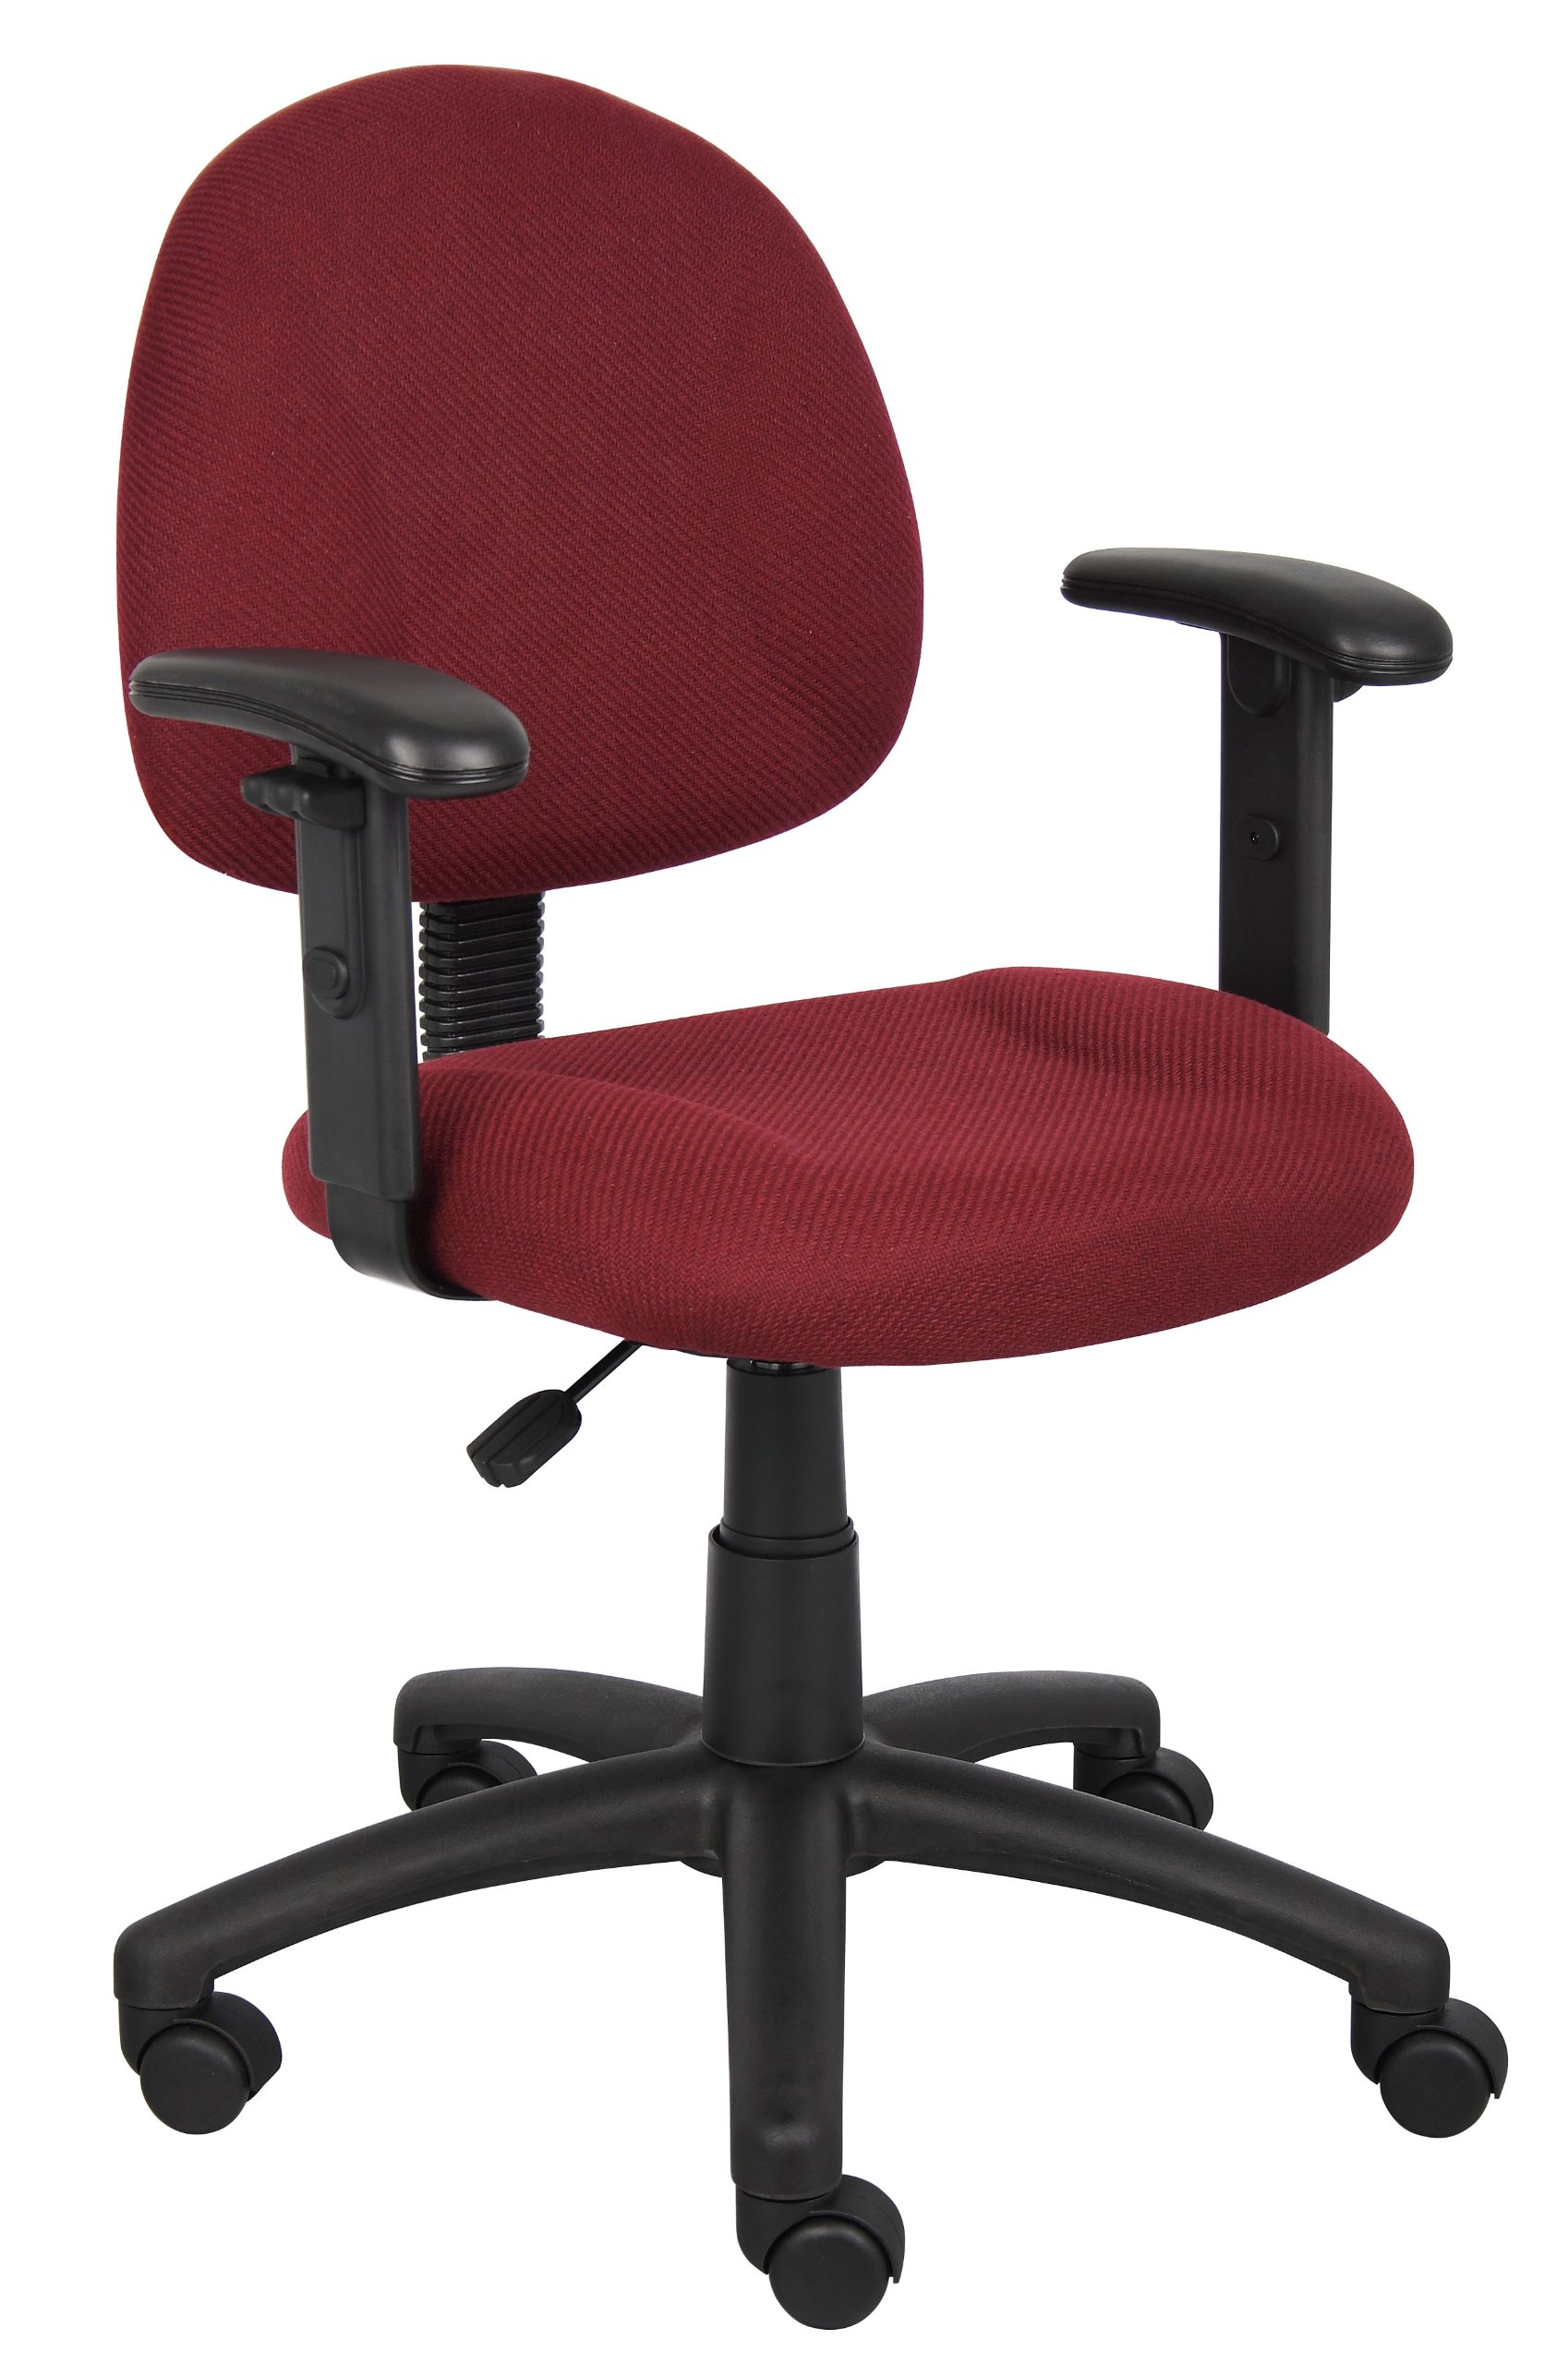 Boss Office Products B316-BY Perfect Posture Delux Fabric Task Chair with Adjustable Arms in Burgundy by Boss Office Products